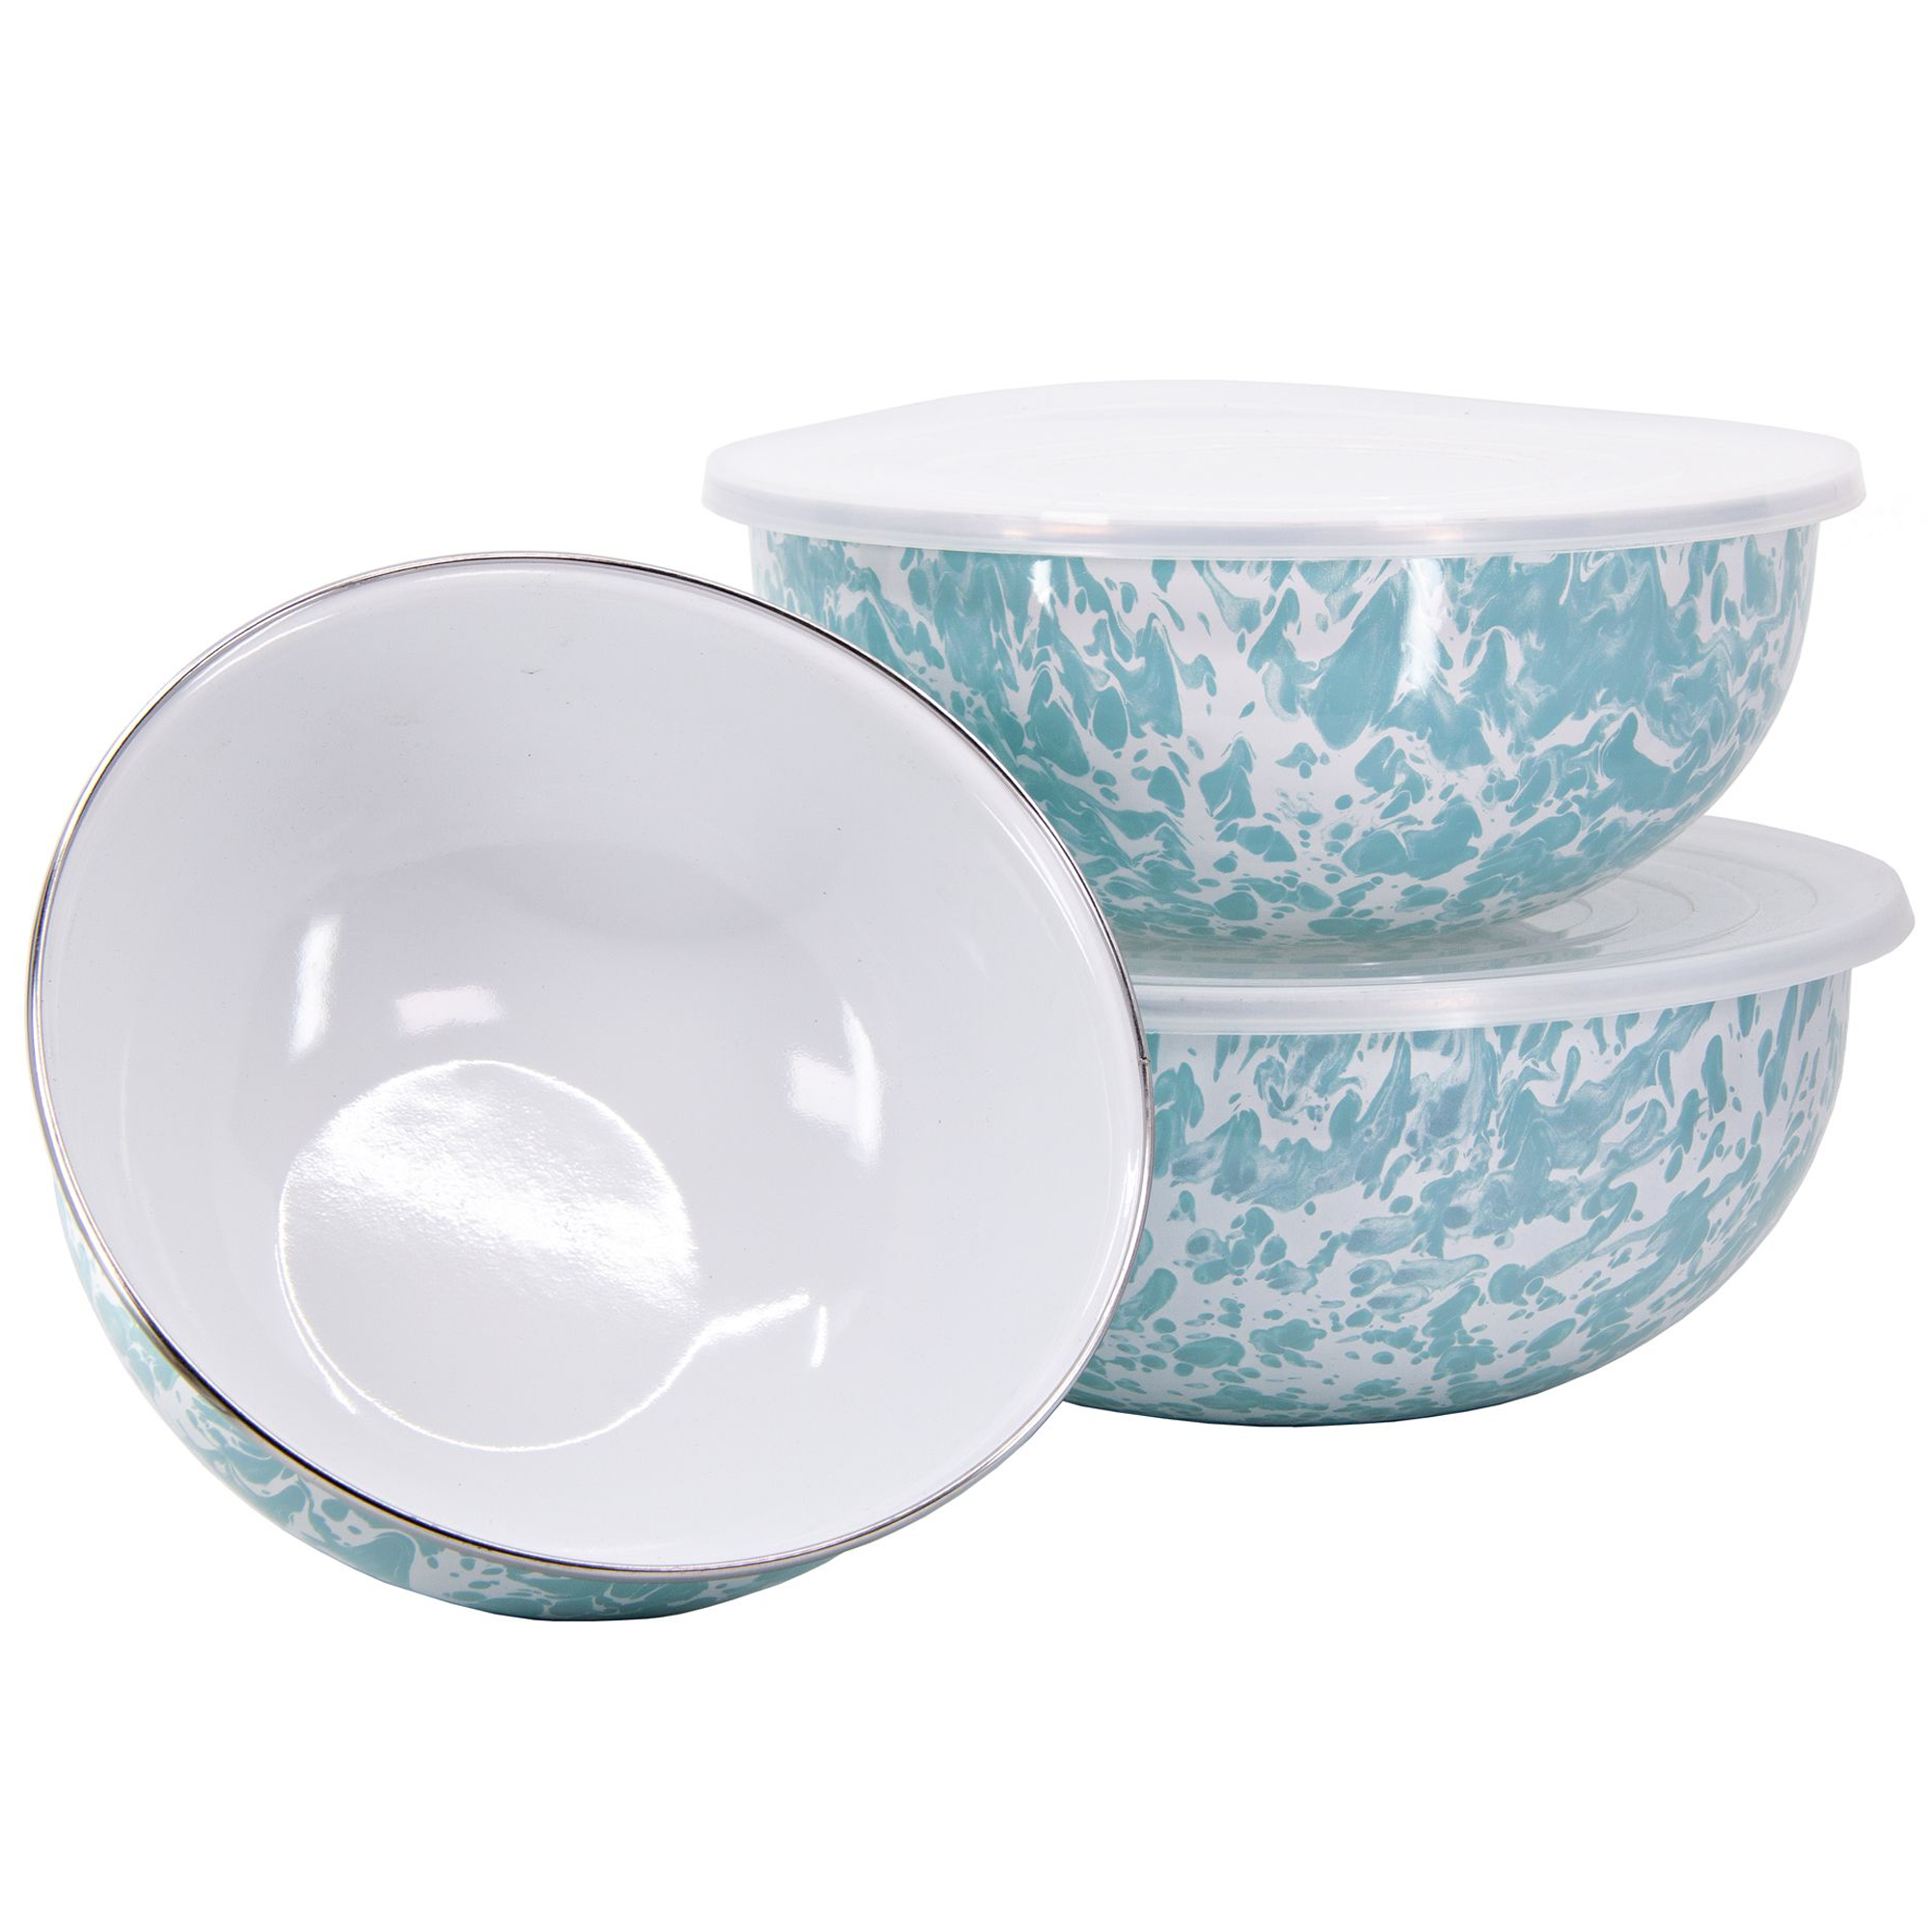 GL54 Sea Glass Swirl Pattern - Mixing Bowls by Golden Rabbit